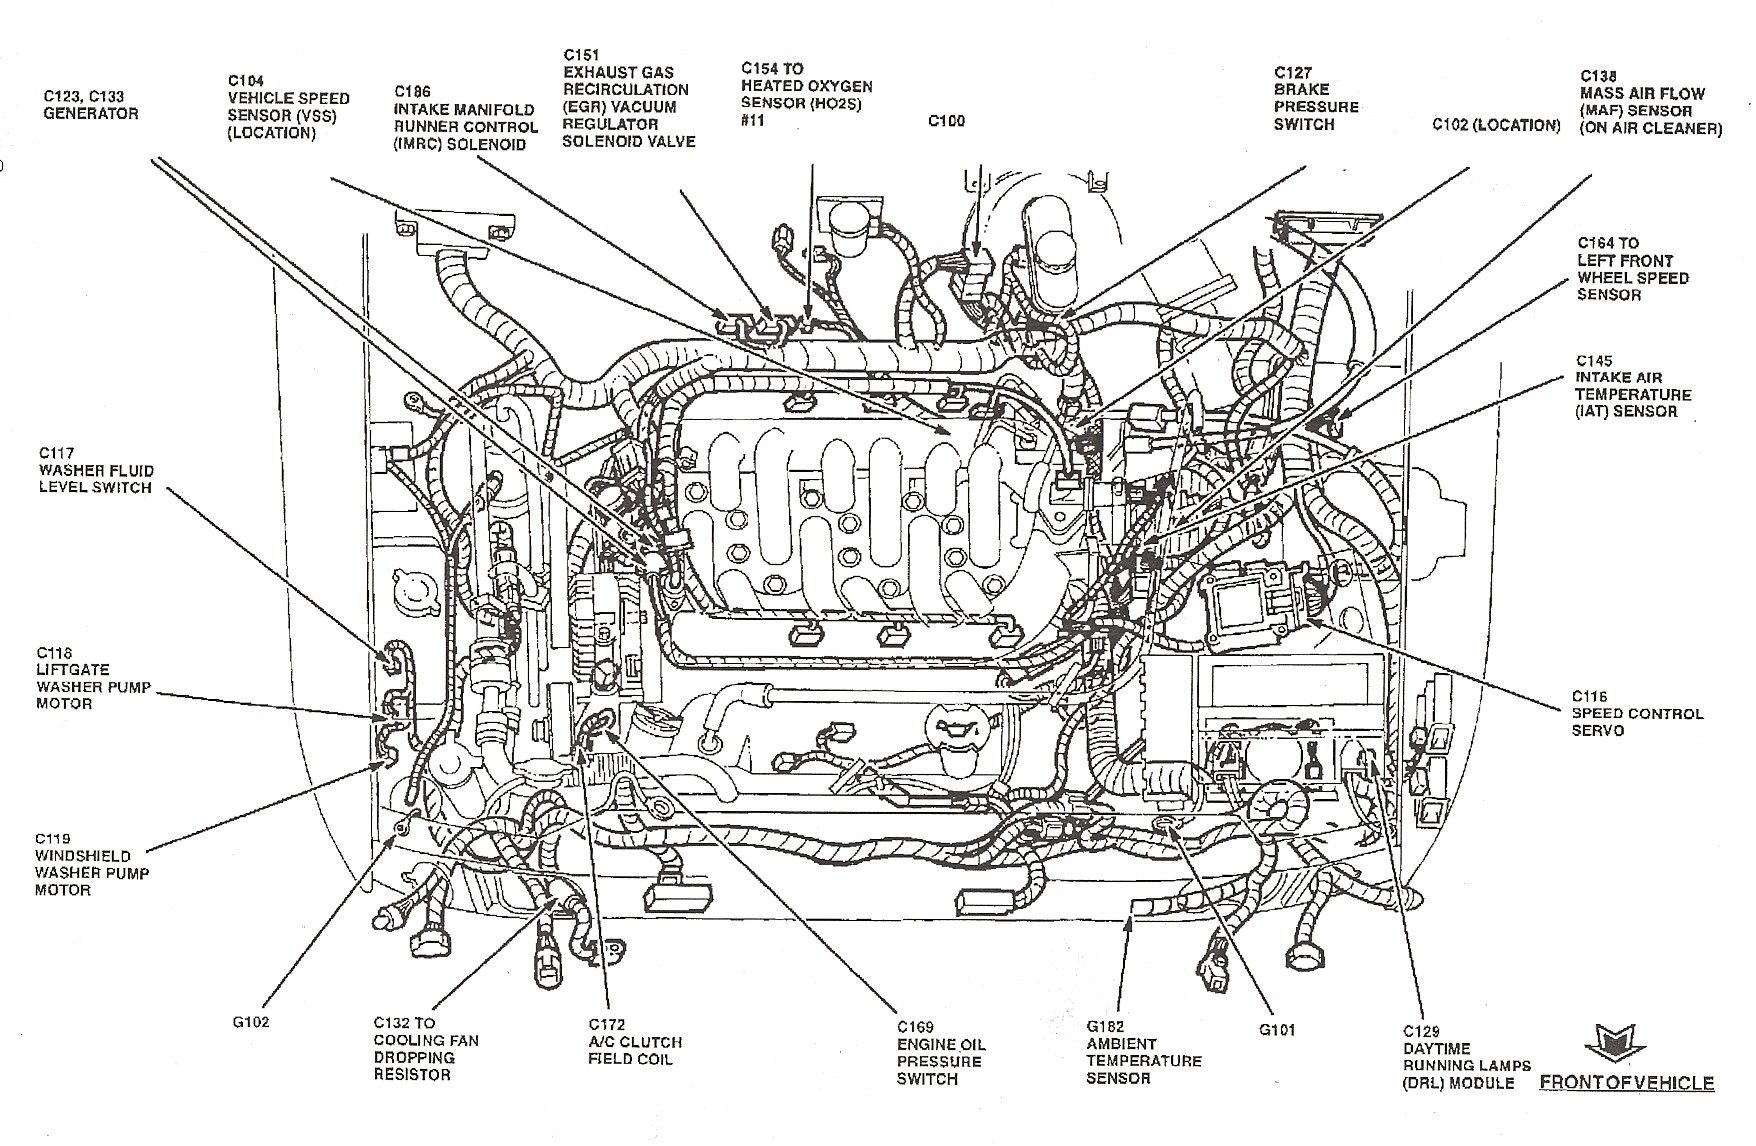 2003 ford explorer parts diagram in 2021 | ford explorer xlt, ford focus  engine, ford explorer  pinterest